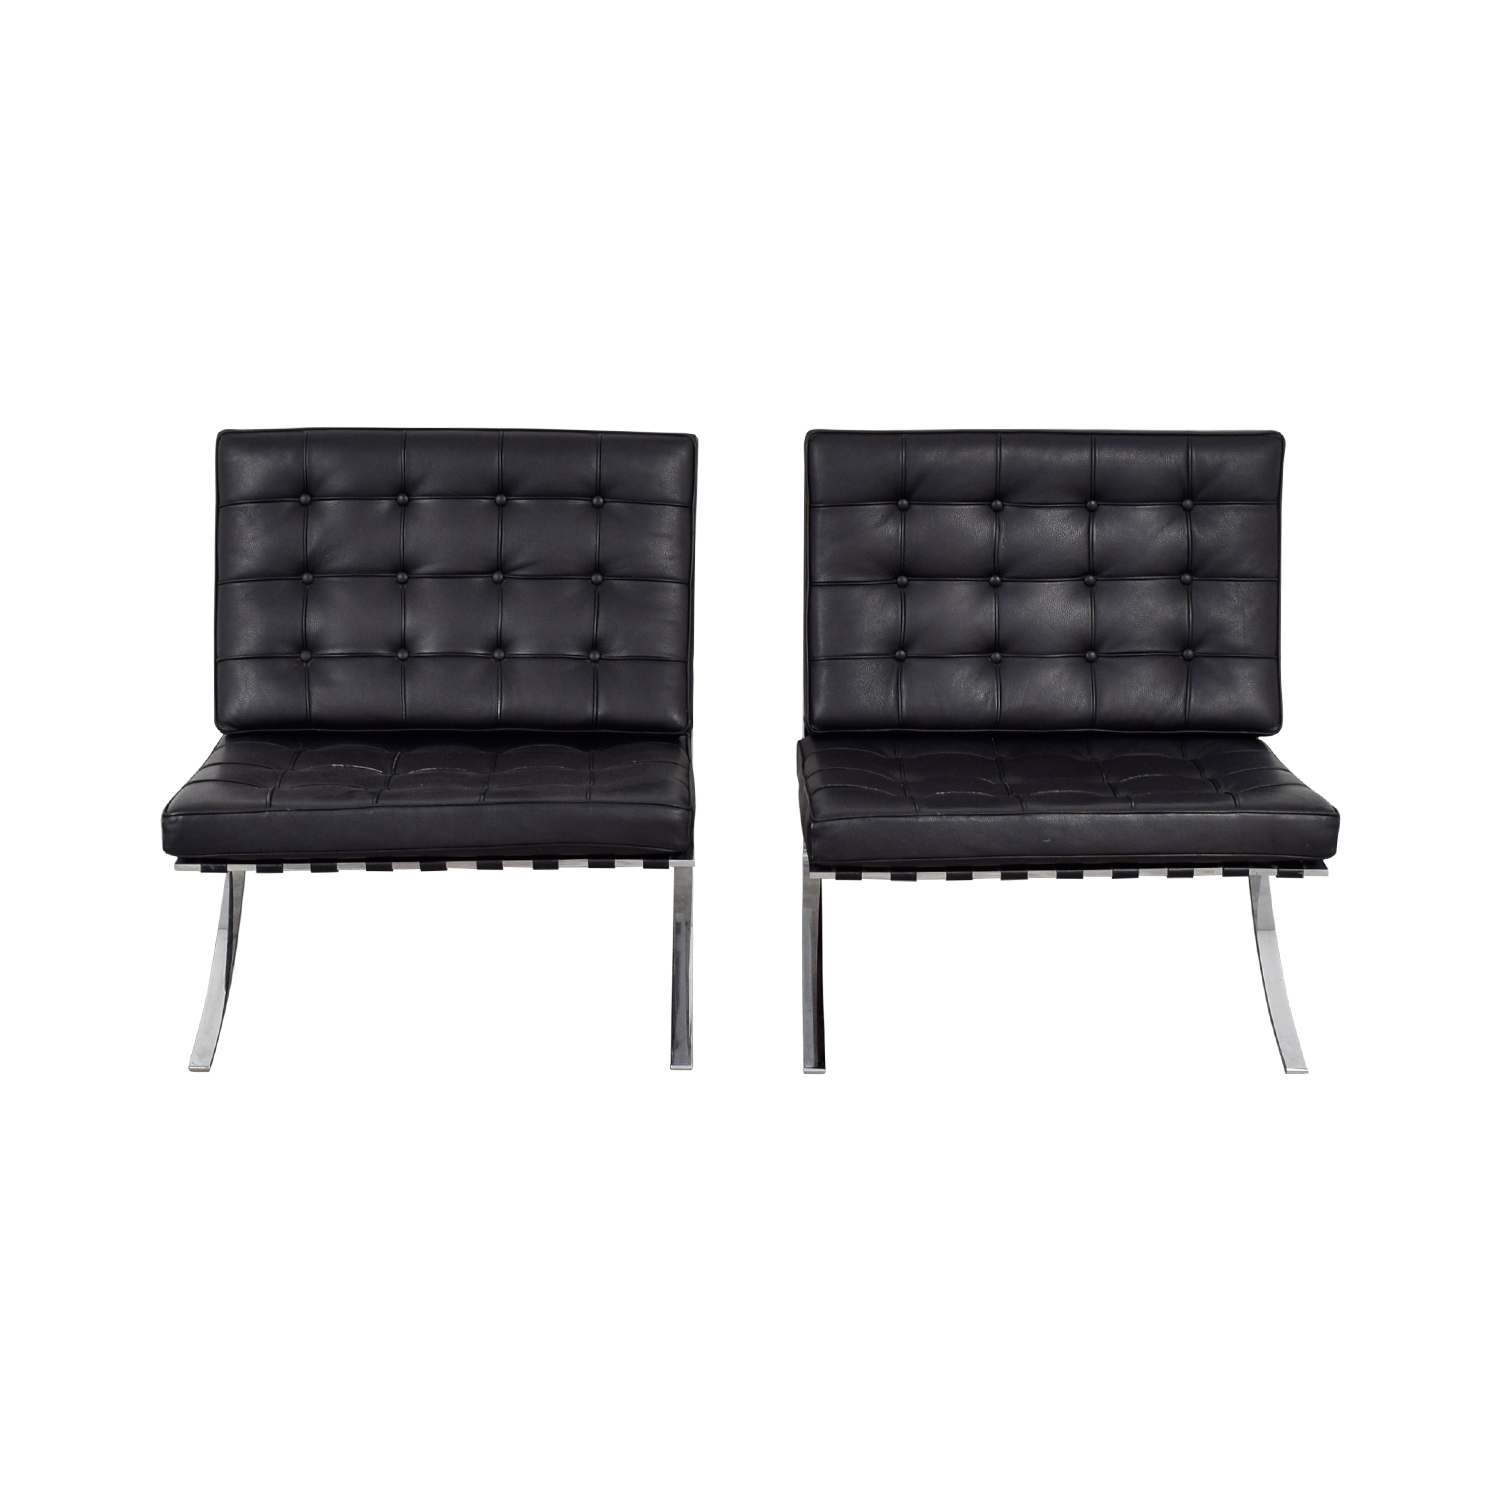 Black and Chrome Tufted Barcelona Style Accent Chairs coupon